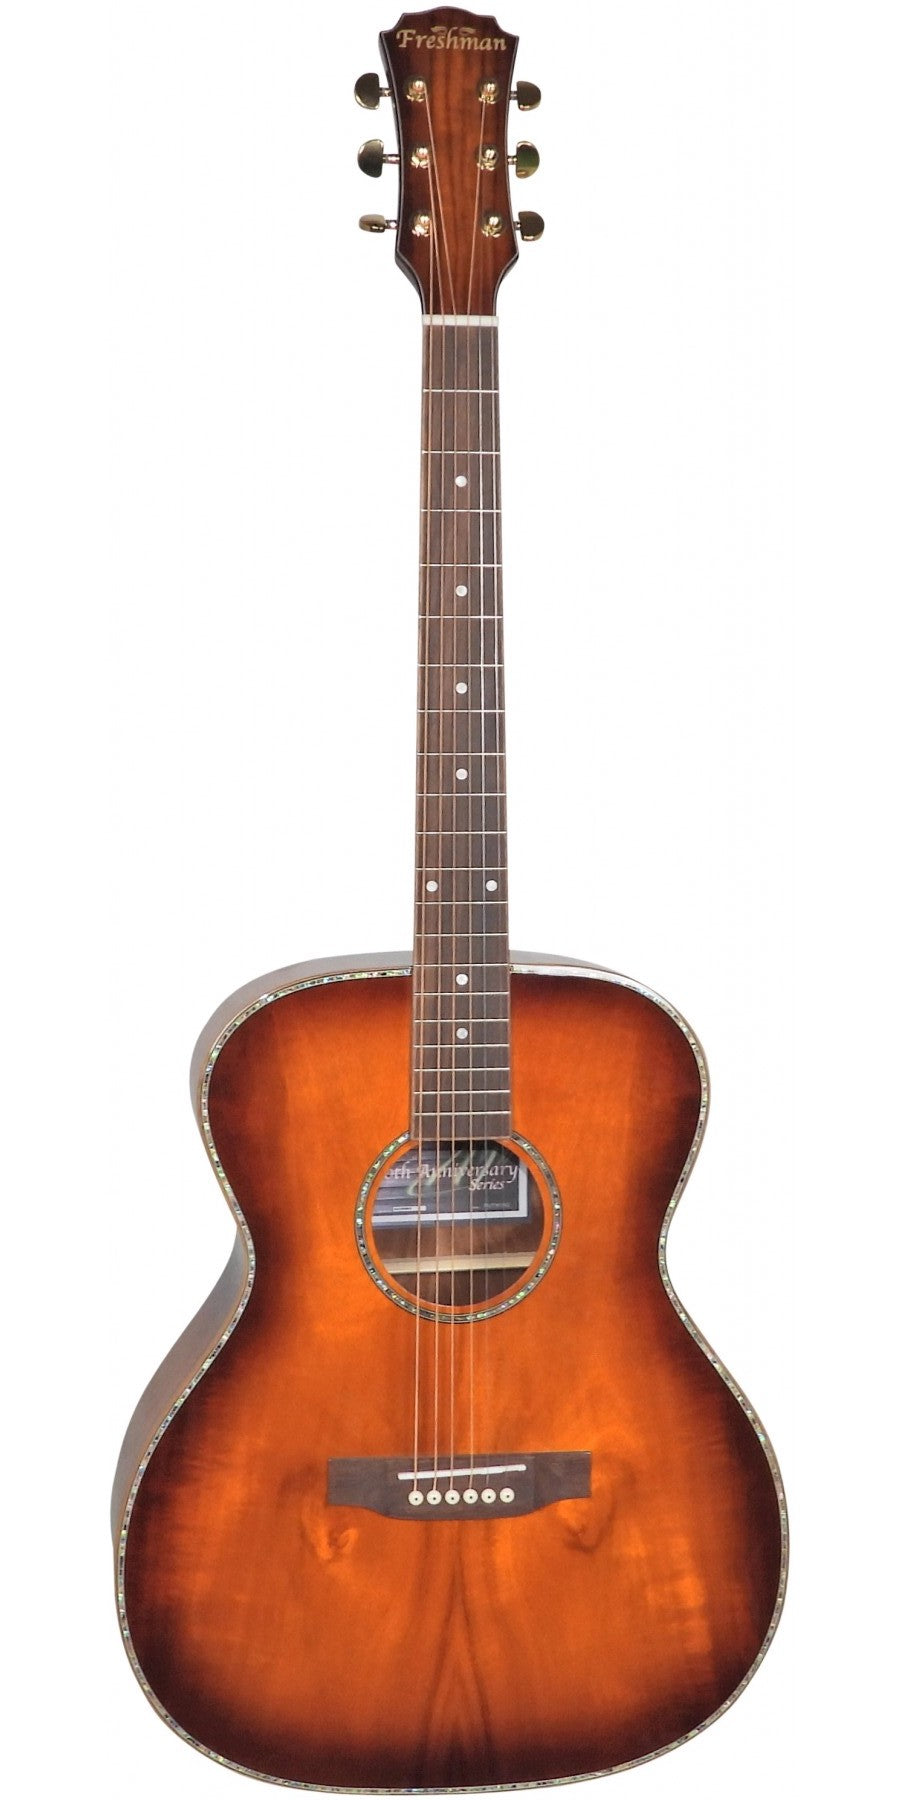 Freshman 20th Anniversary Series FALTDKOAO OM Acoustic Guitar All Koa - Varsity Music Shop